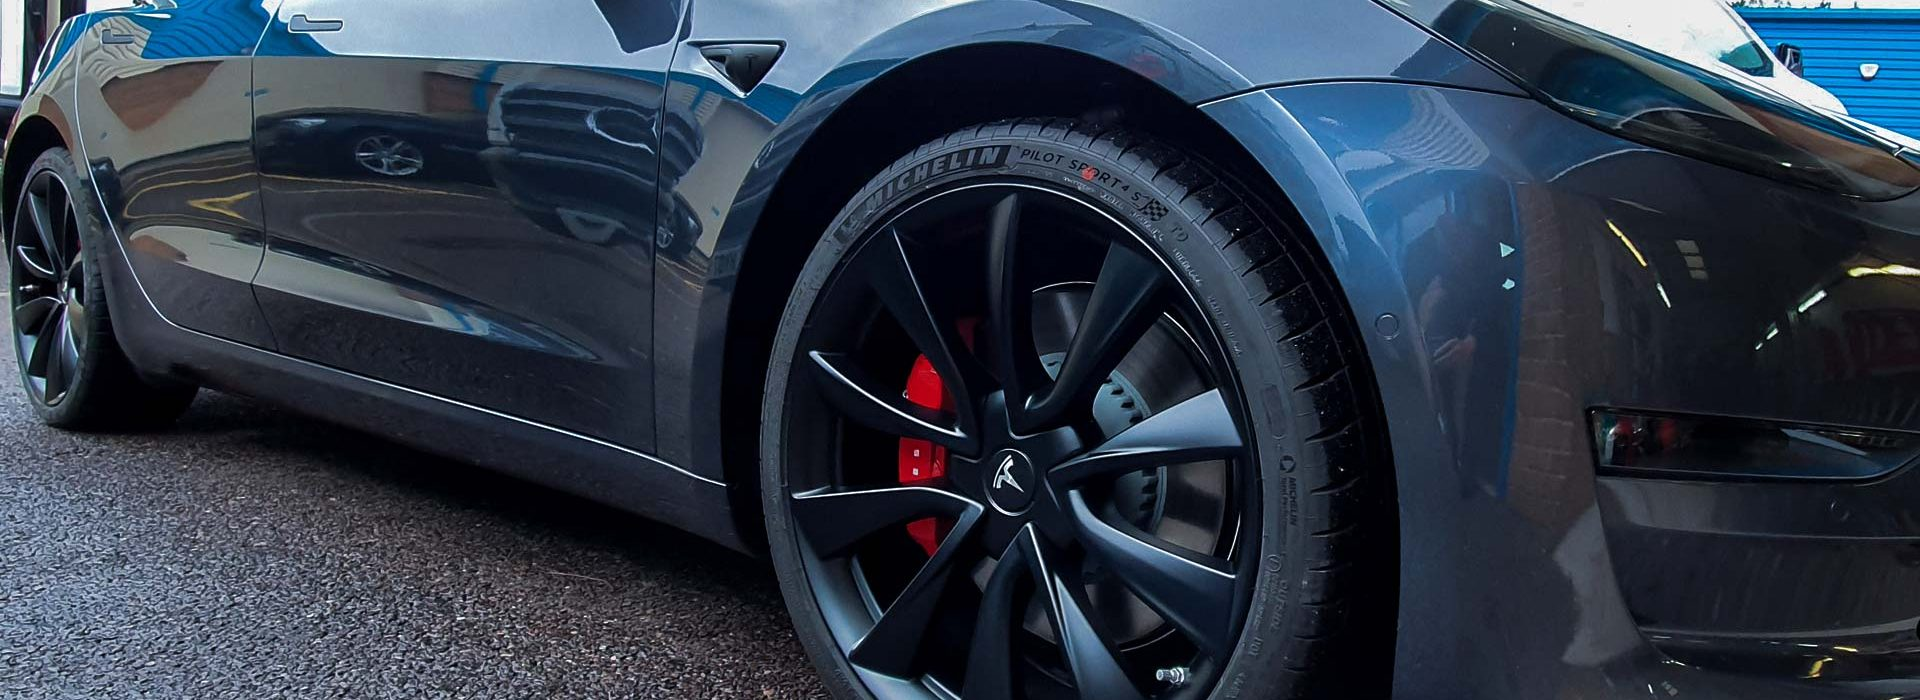 Portfolio - Tesla Car Wrap Wheels - Insignia Signs